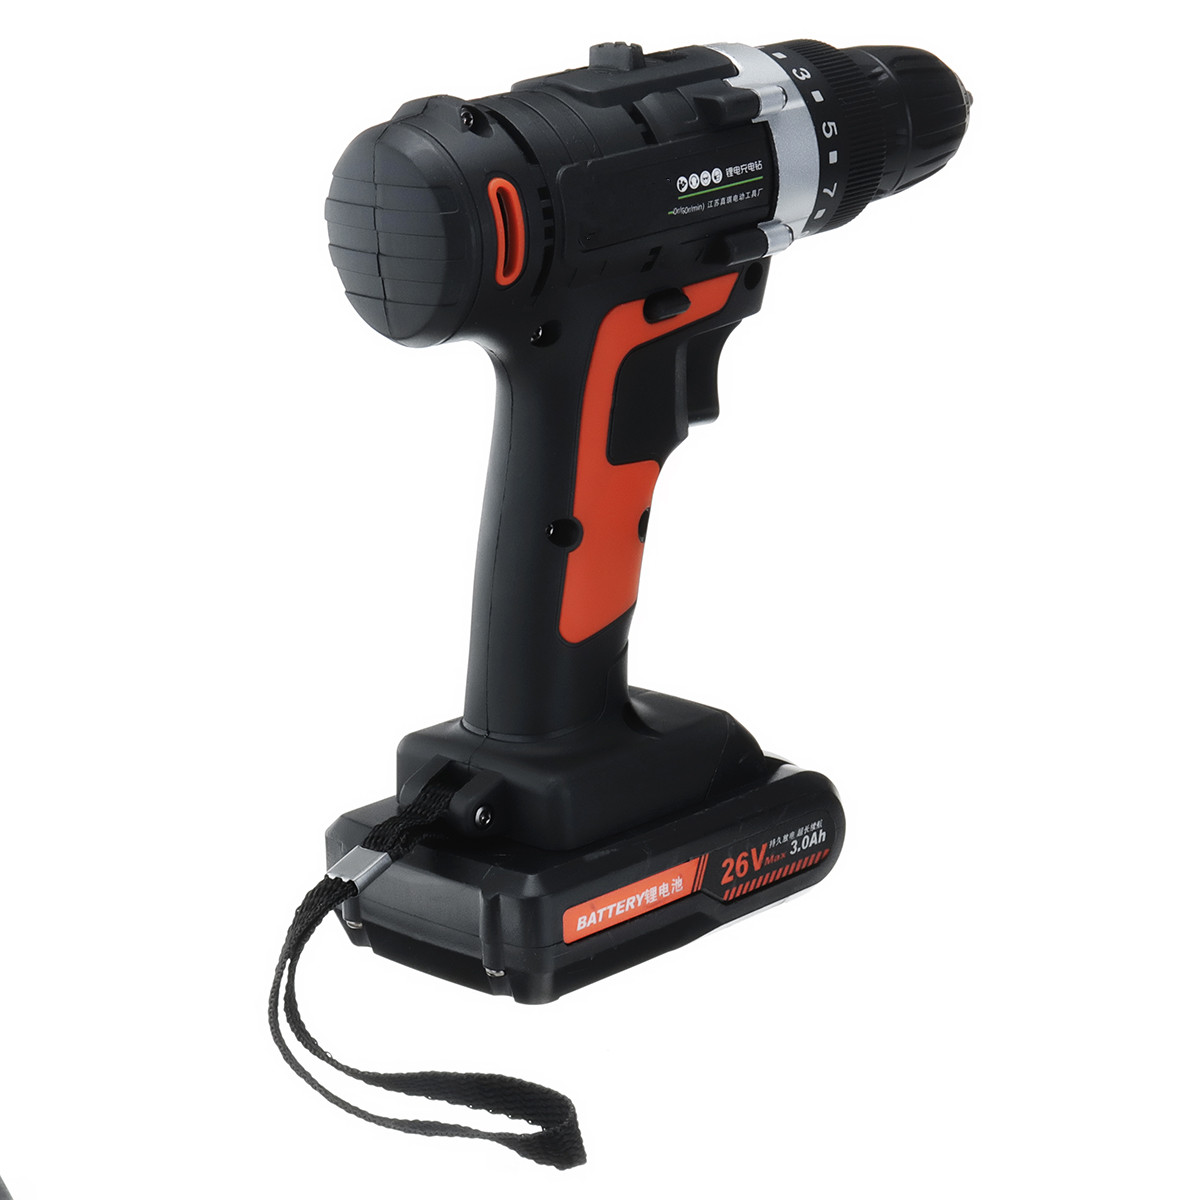 26V 350Nm Rechargeable Electric Cordless Drill Screwdriver Power Driver Lithium Battery Multifunction Electric Power Drill Tools